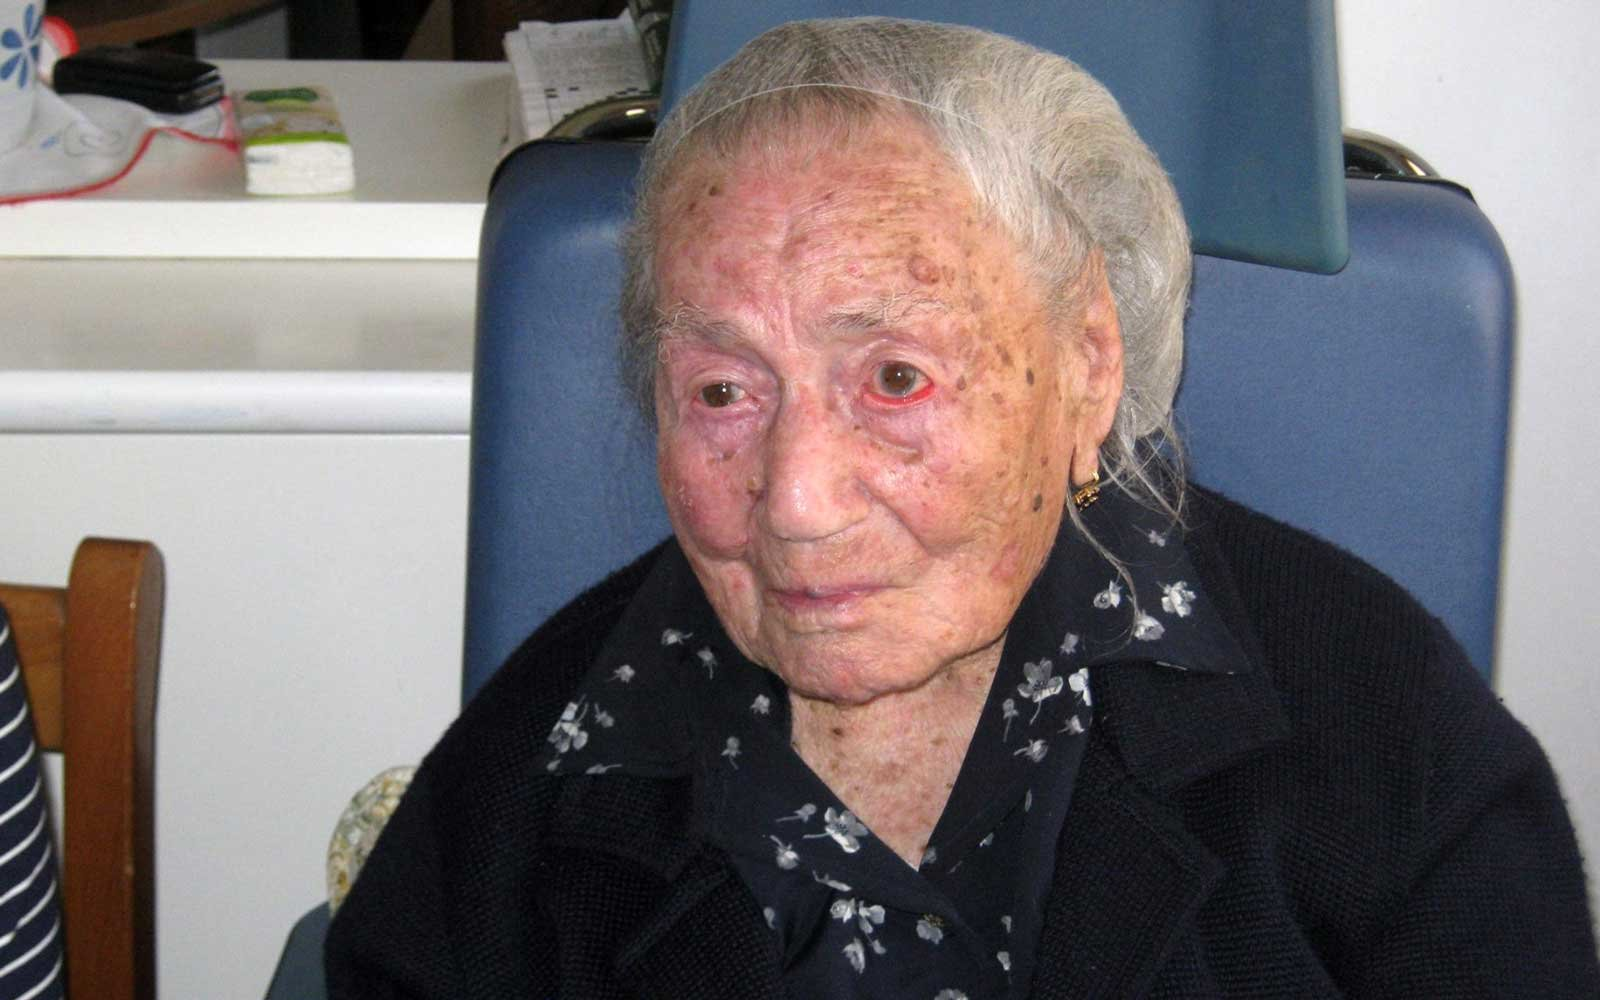 Europe's Oldest Living Person Said She Reached 116 by Eating Chocolate Every Day